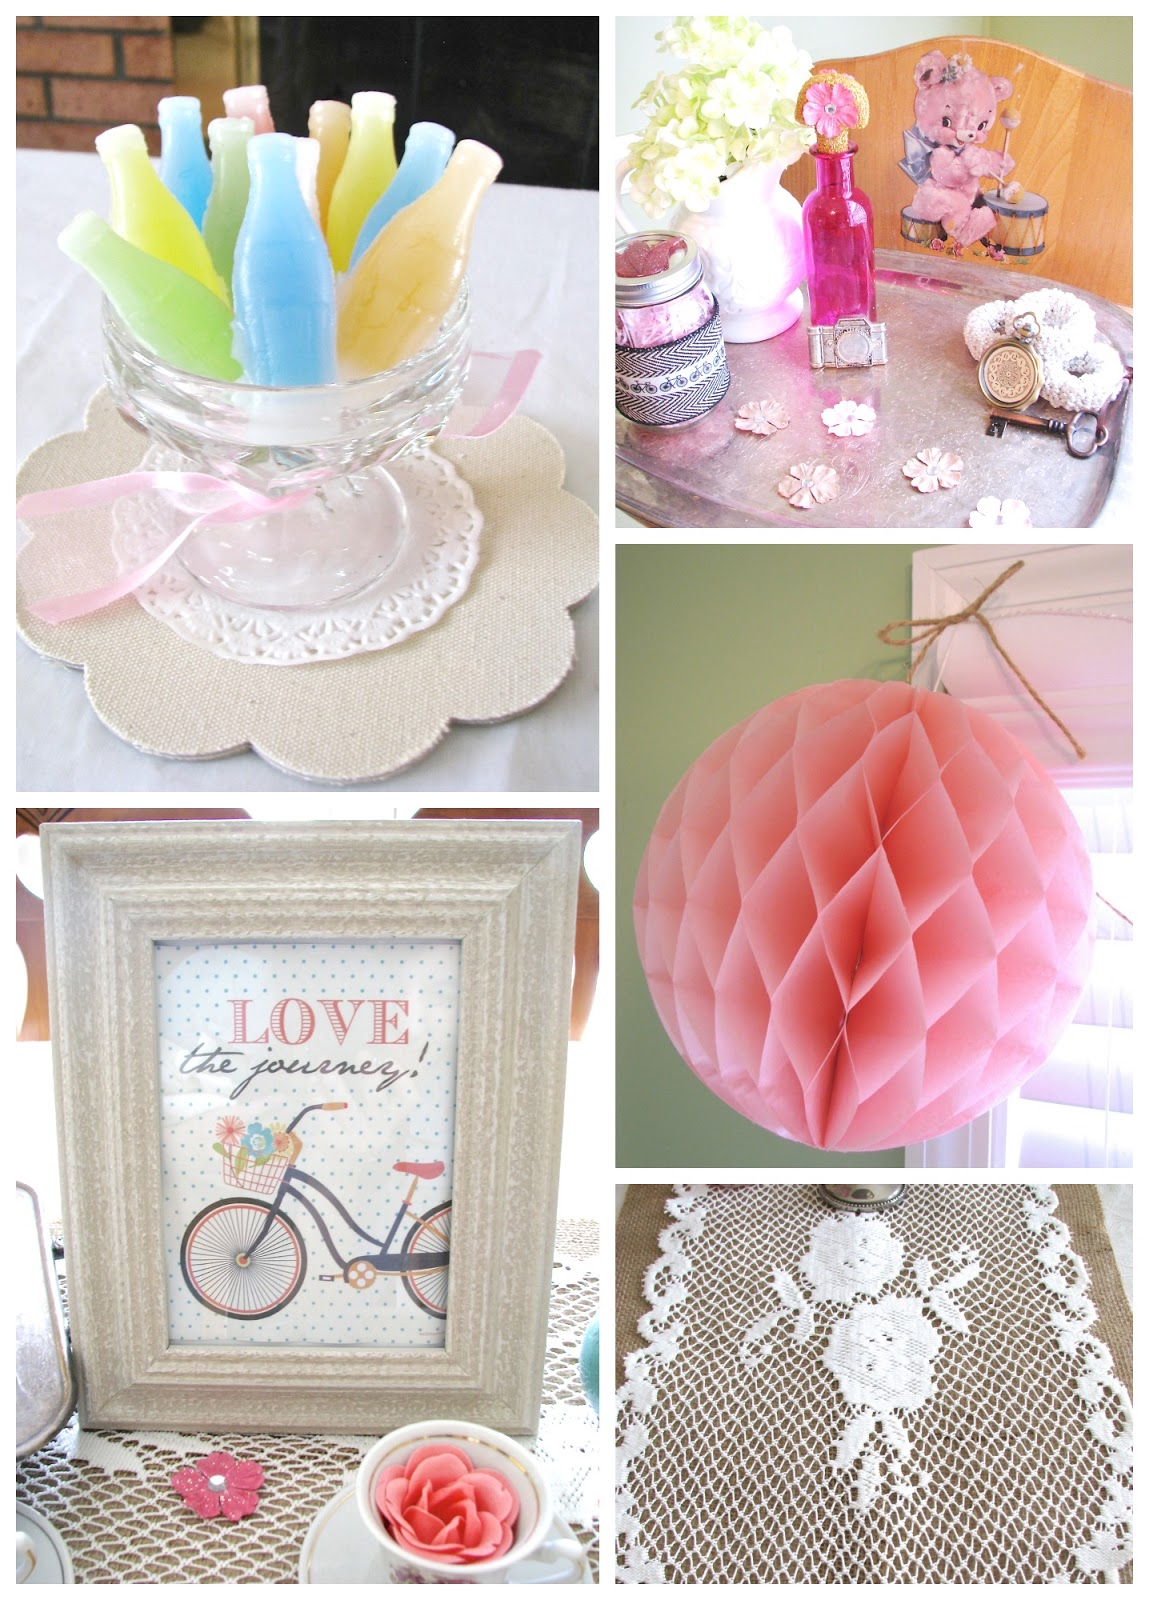 Uncategorized Vintage Themed Birthday Party homemadeville your place for homemade inspiration vintage themed party decor